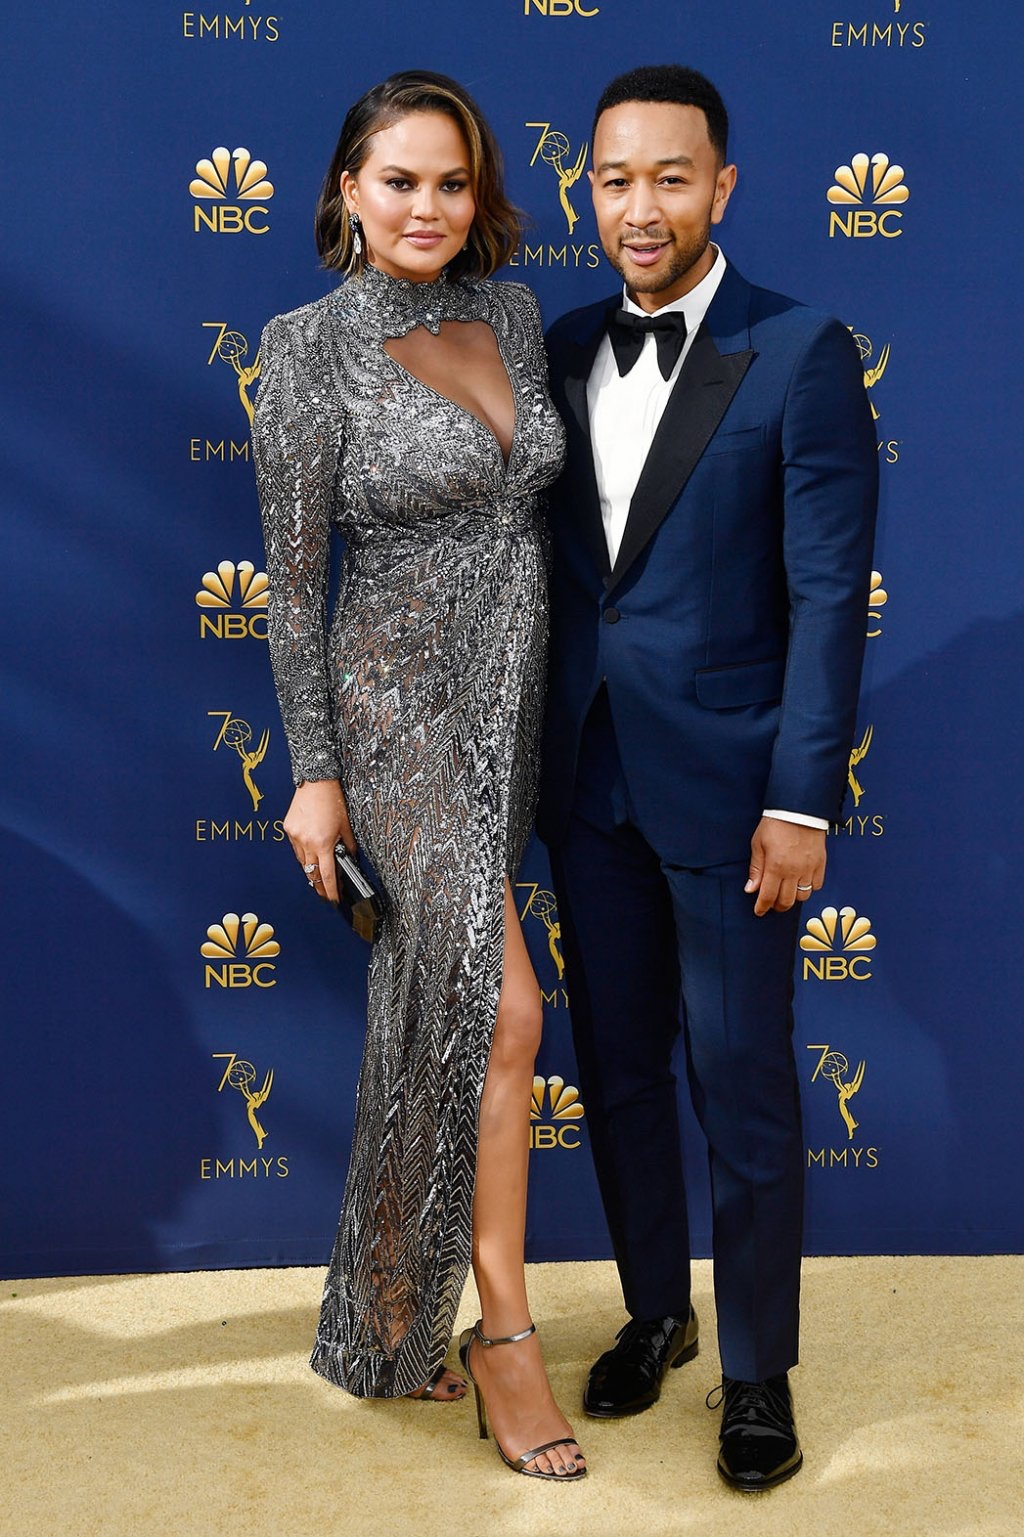 Chrissy Teigen in Zuhair Murad Couture with John Legend, 70th Annual Primetime Emmy Awards, Betty White, Emmys 2018, Fashion, Featured, Glenn Weiss, Hannah Gadsby, highlights, Jav Svendsen, Online Exclusive, Style, The Marvellous Mrs. Maisel, top moments, We solved it, Diversity